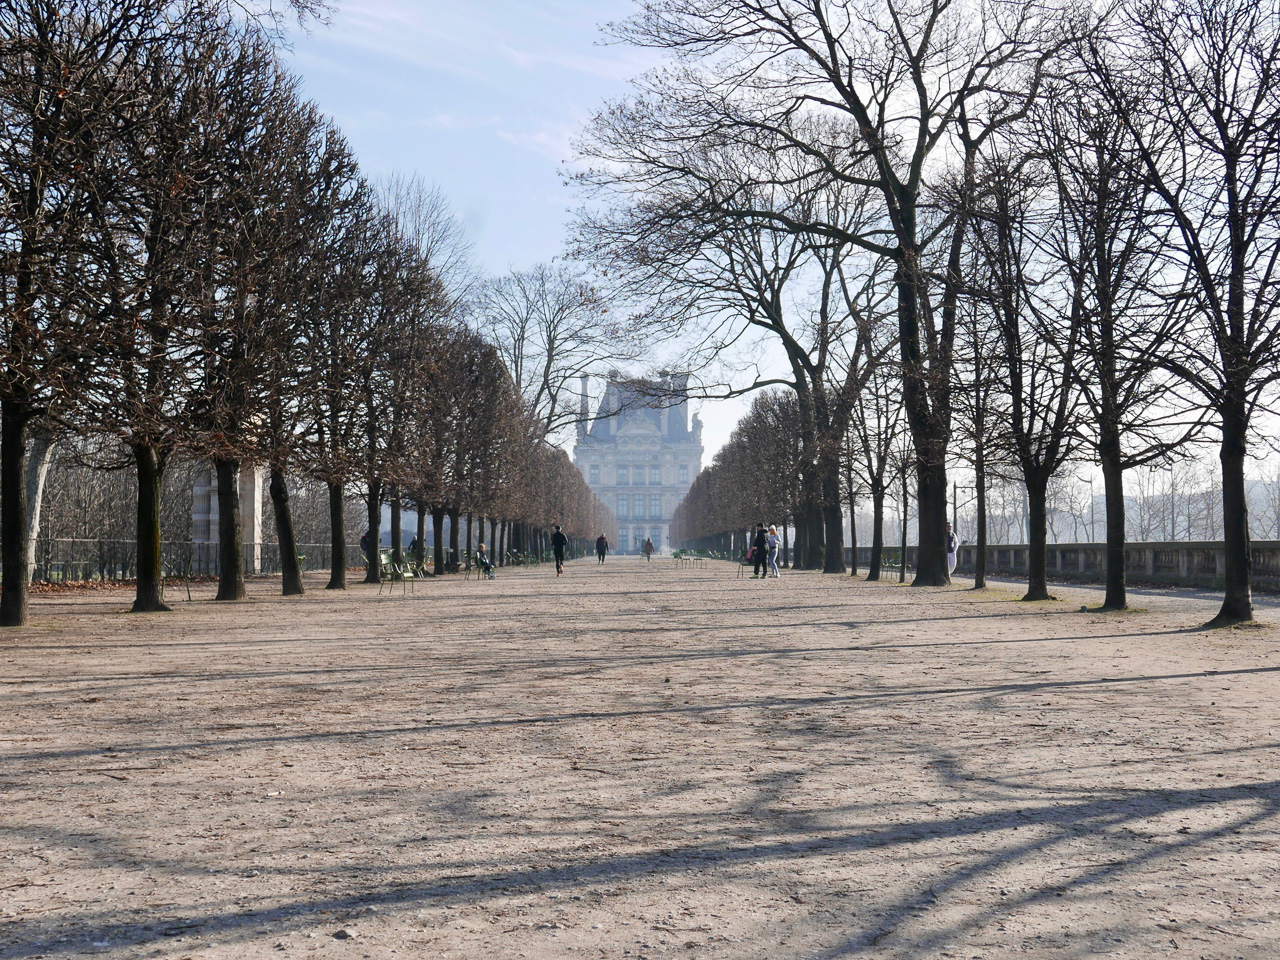 Cara Sharratt Travel - Winter - Jardin des Tuileries - Paris, France